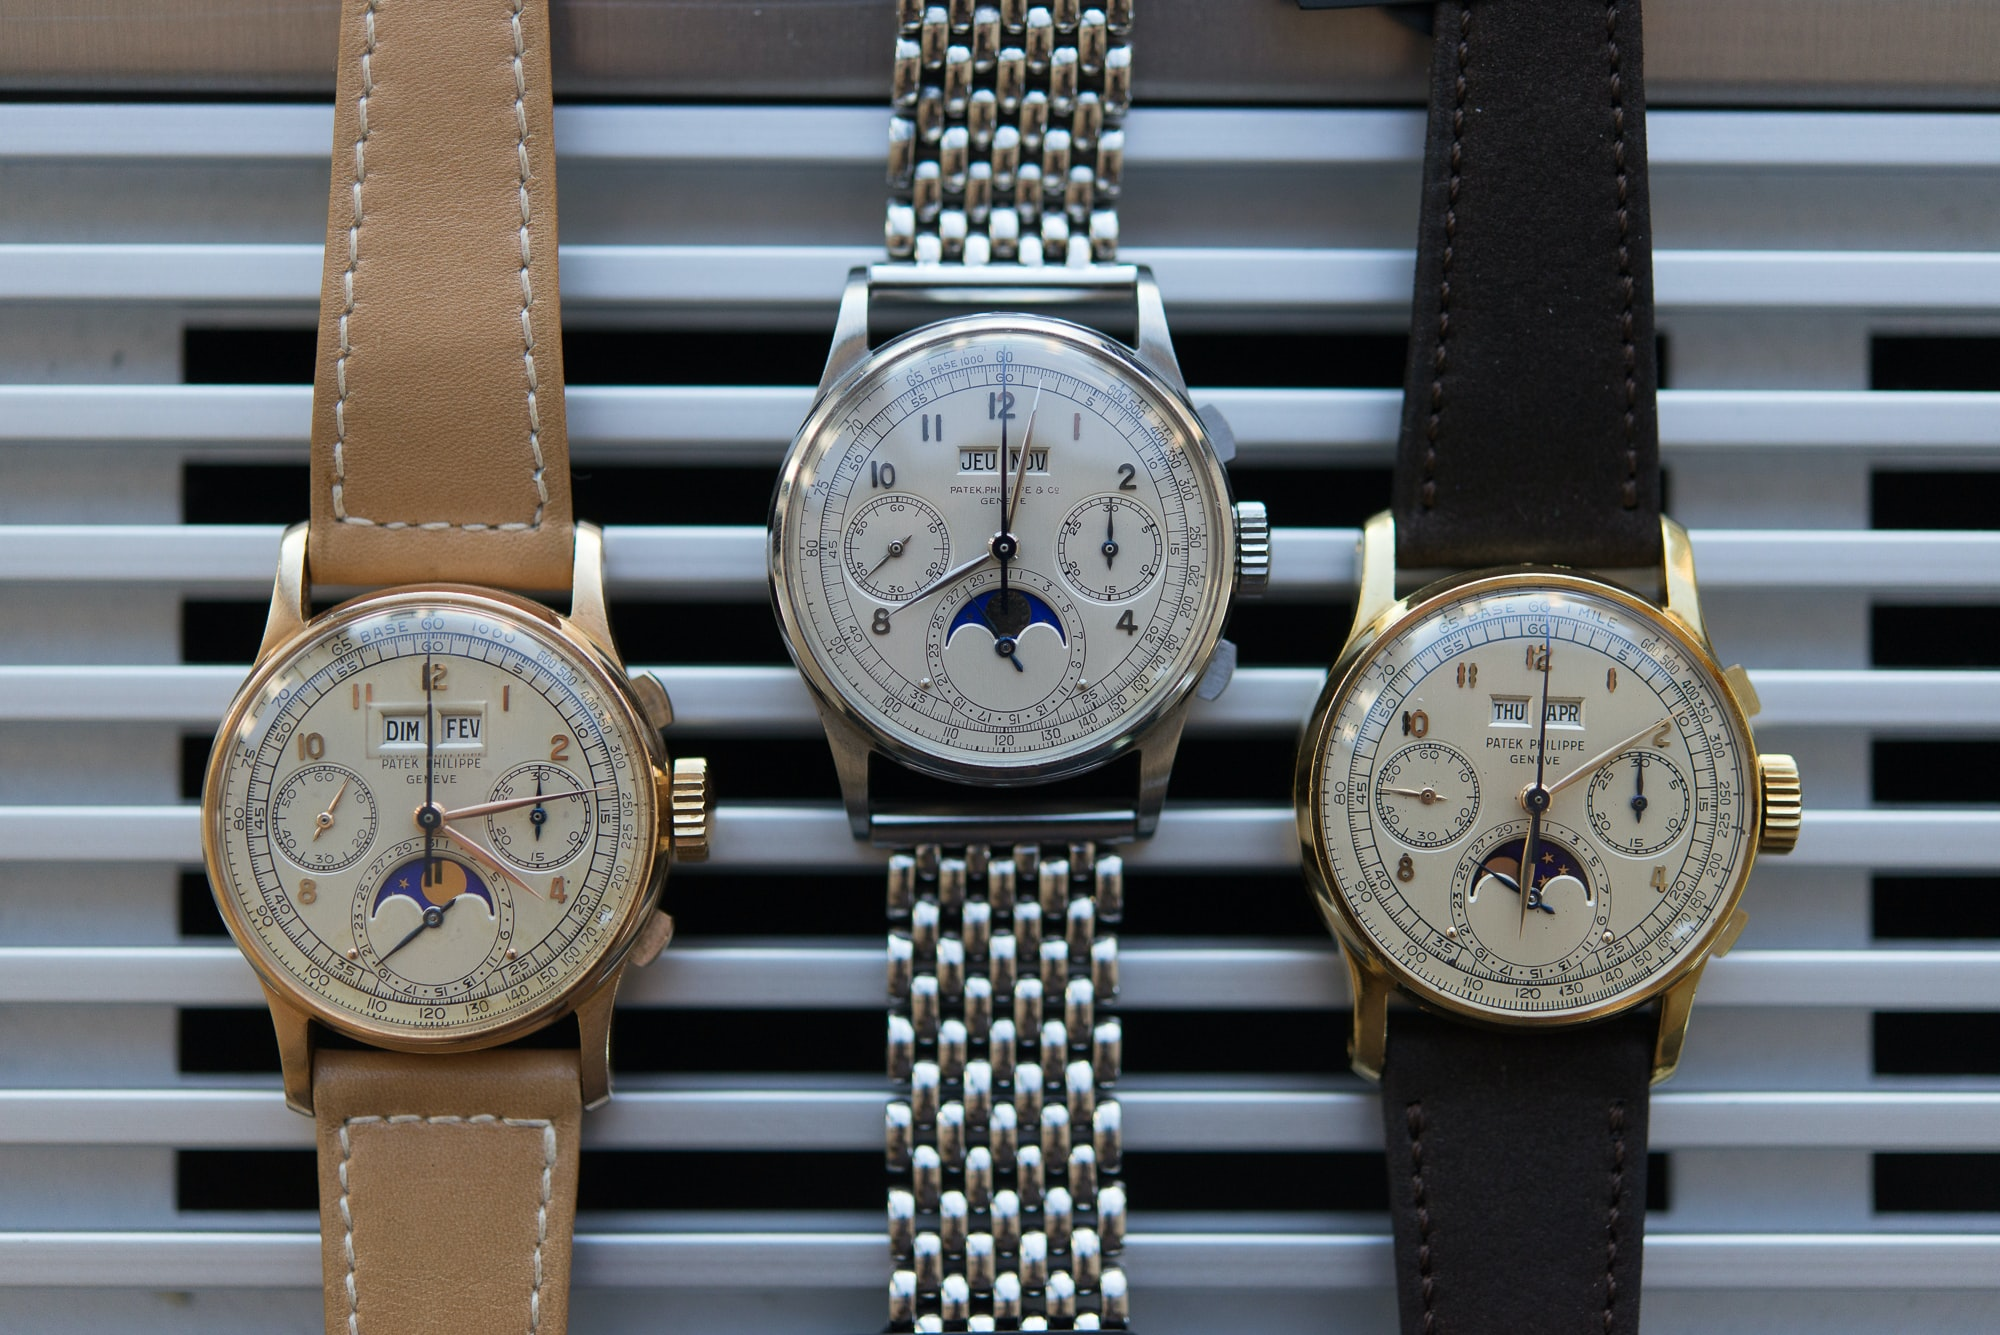 Record-Breaking Patek Philippe 1518 Steals The Show, But Results Show A Mixed Bag At Phillips' Geneva Watch Auction: Four Record-Breaking Patek Philippe 1518 Steals The Show, But Results Show A Mixed Bag At Phillips' Geneva Watch Auction: Four GVAPhillips 10